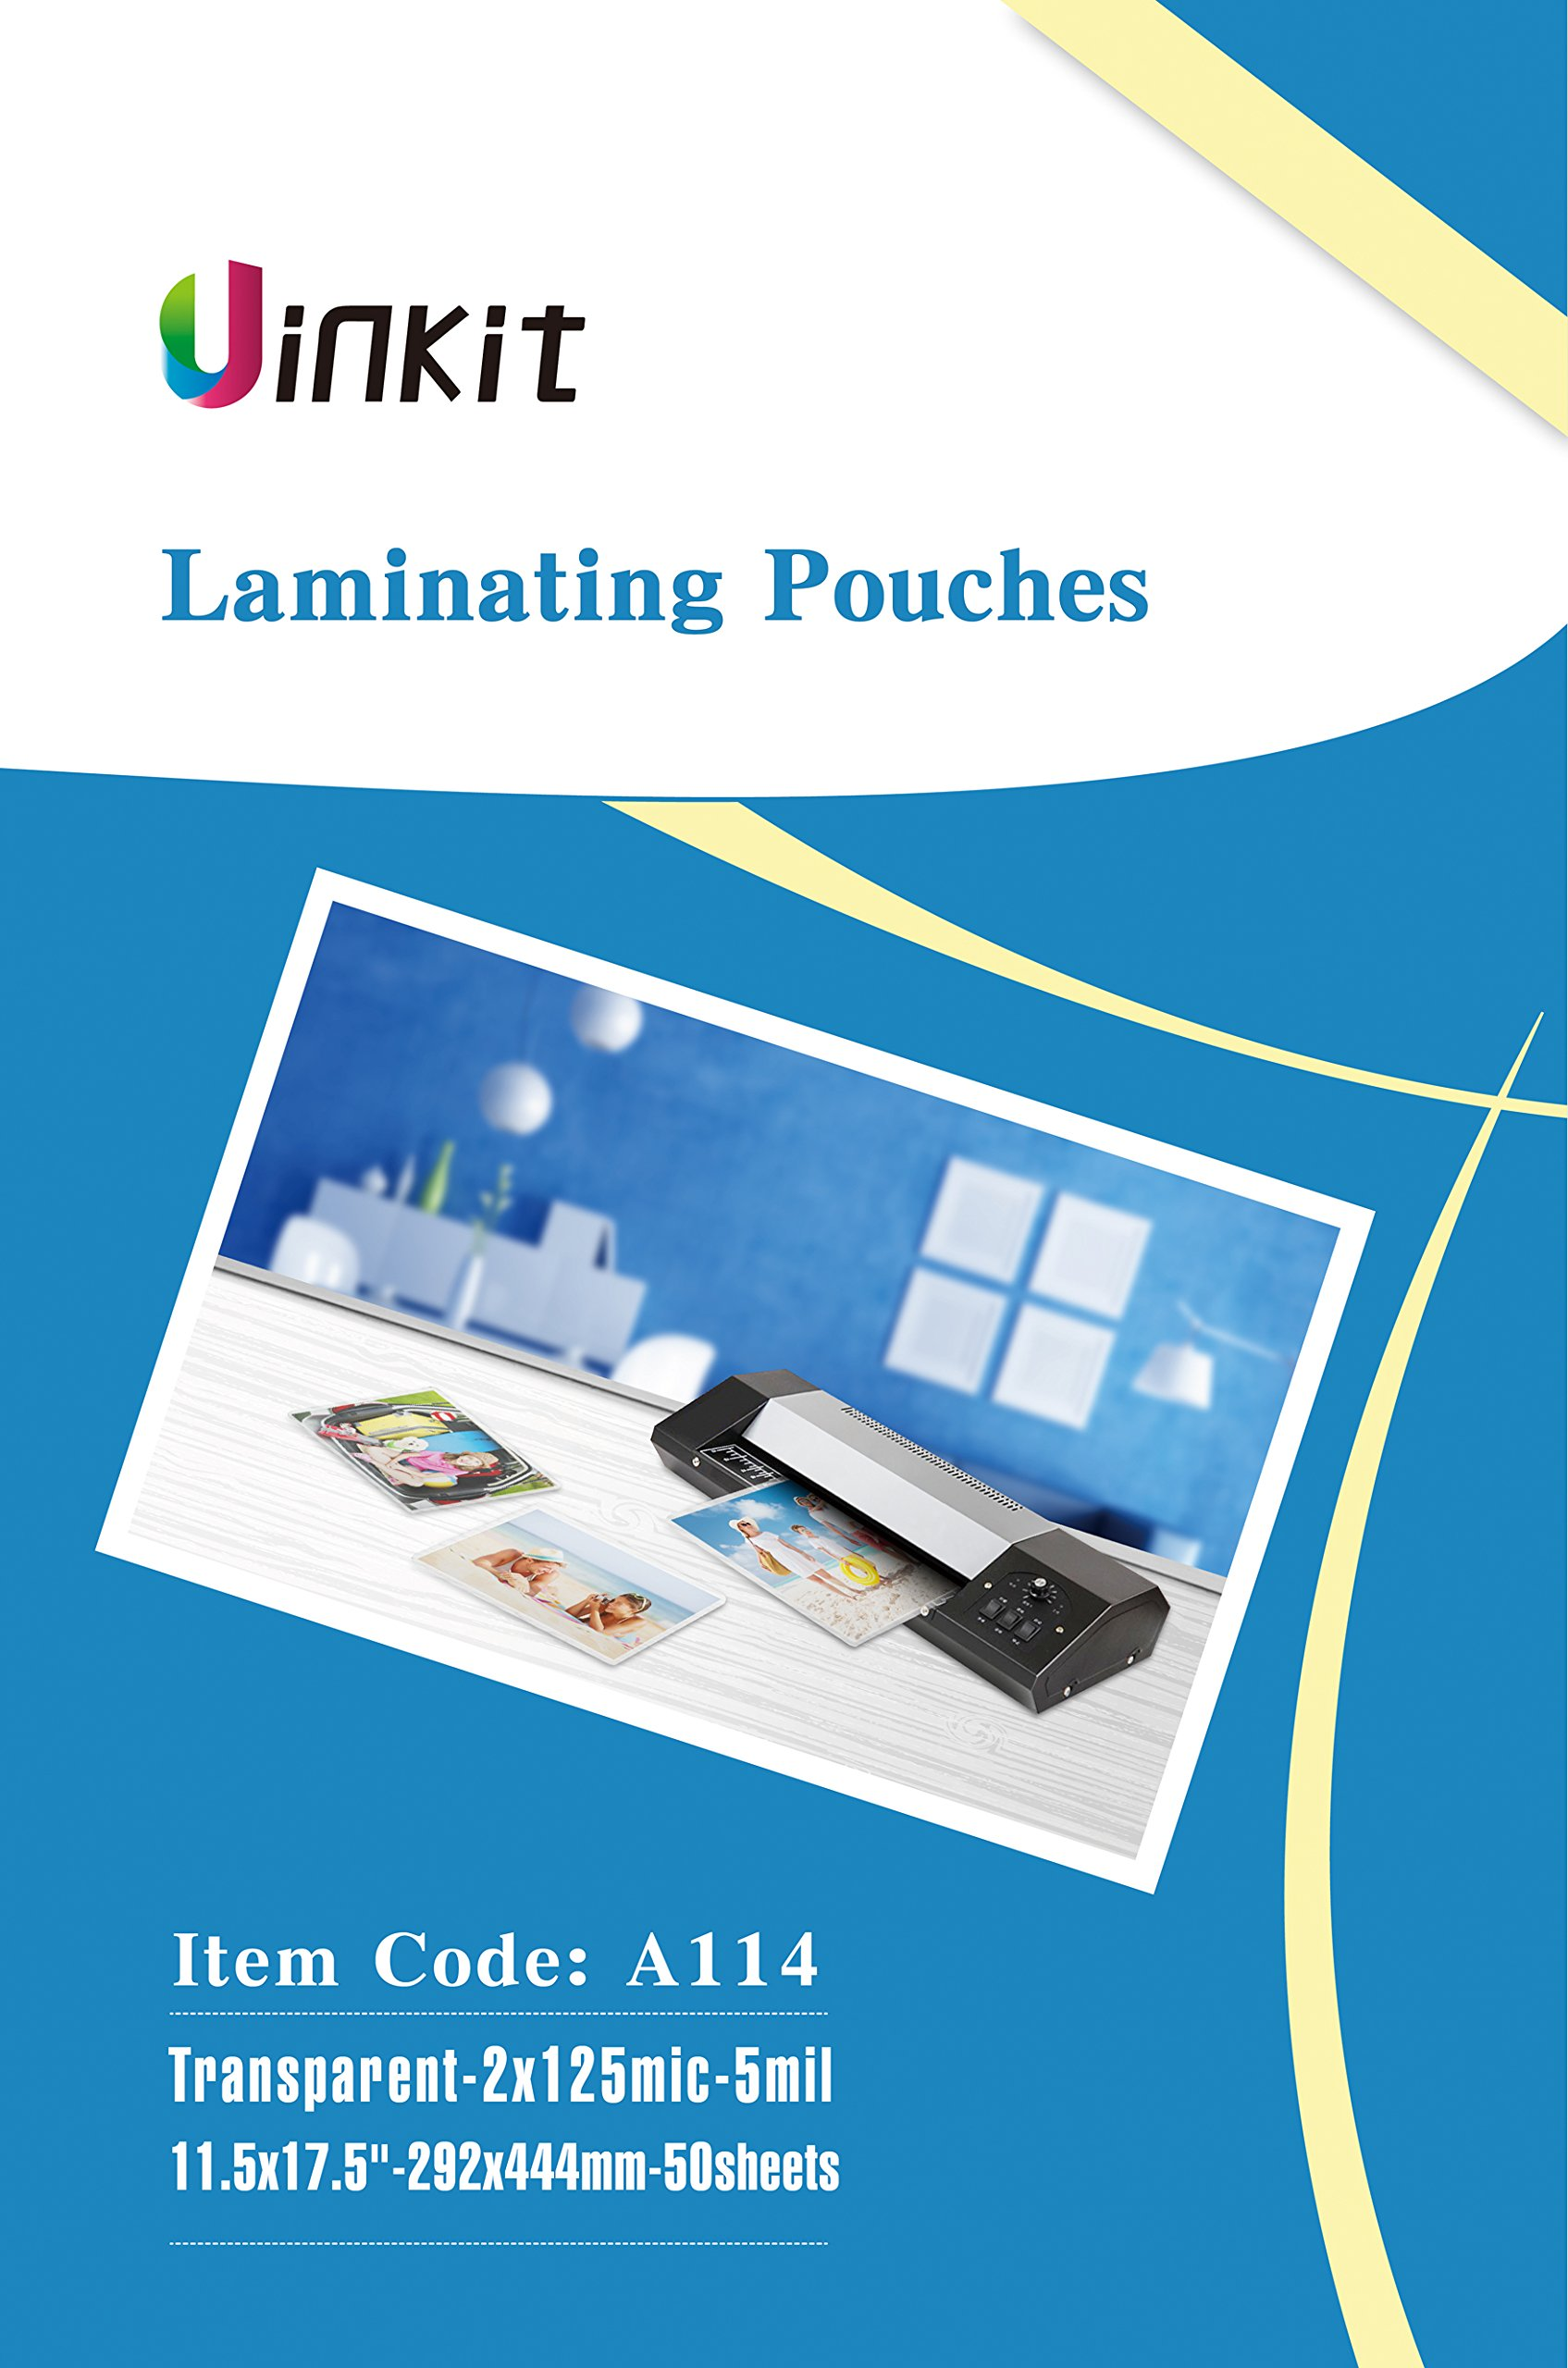 Hot Thermal Laminating Pouches 5Mil - 11.5x17.5 Inches for Sealed 11x17'' Photo - 50 Sheets 11.5x17.5 inches Pack, Uinkit 24 Hours Service, 3 Years Warranty by Uinkit